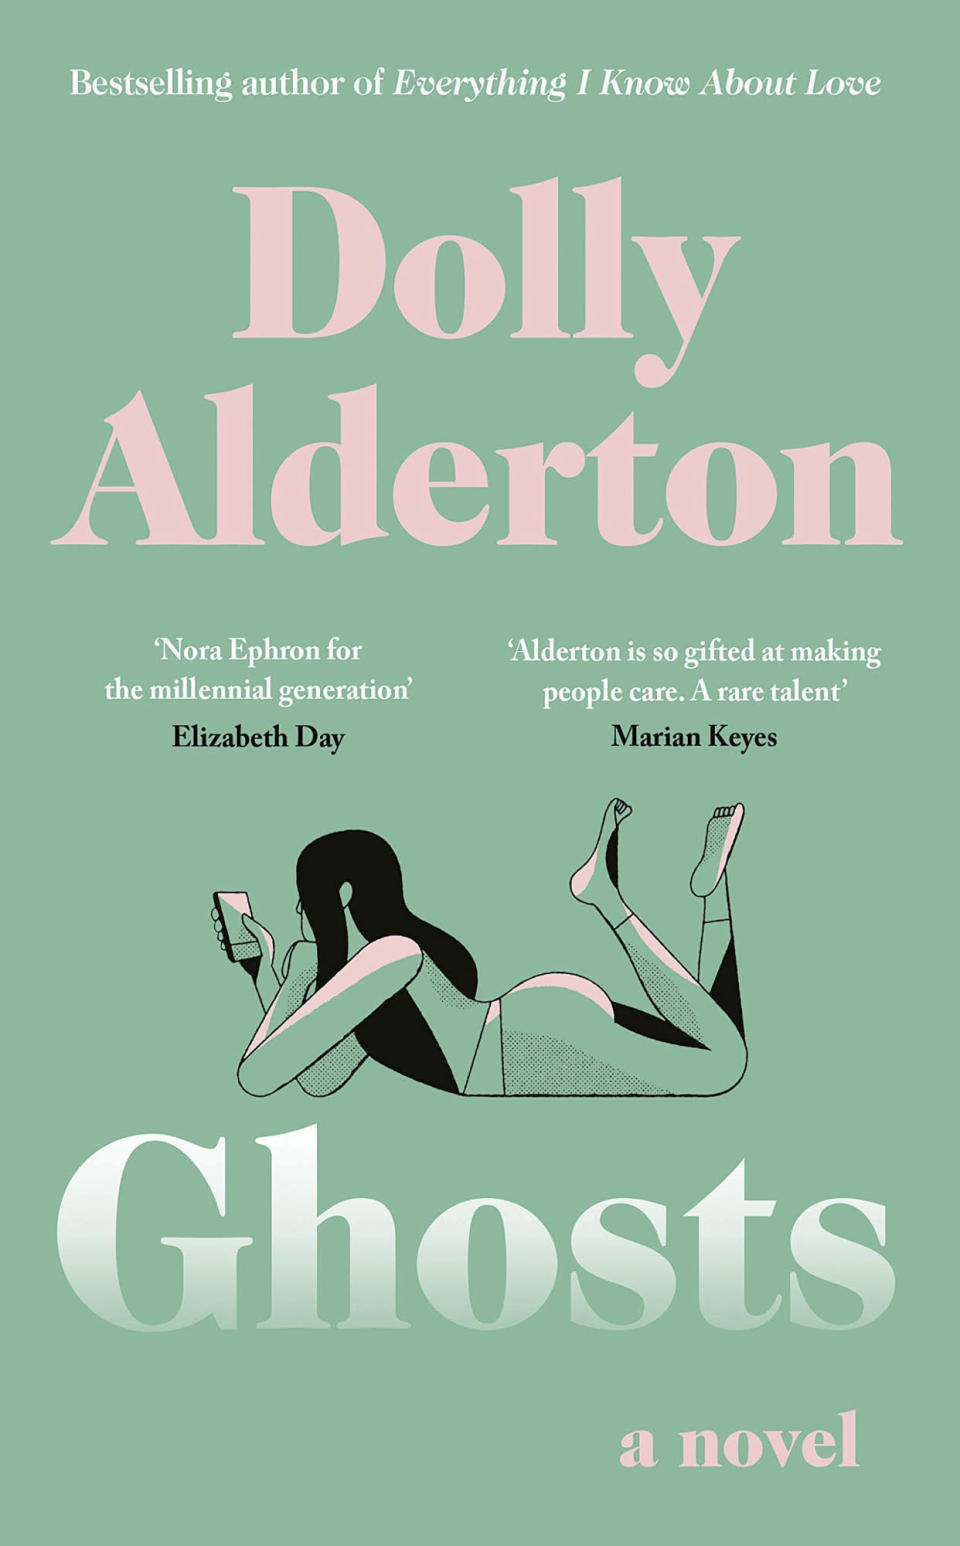 <p>The British writer and romance columnist became a hit with young women the world over when she released her memoir <em>Everything I Know About Love</em>, and her debut novel brings many of the same themes to the page. As protagonist Nina gets ghosted by a man she just fell in love with, Alderton explores the perils of modern heteronormative dating. (Aug. 3)</p>